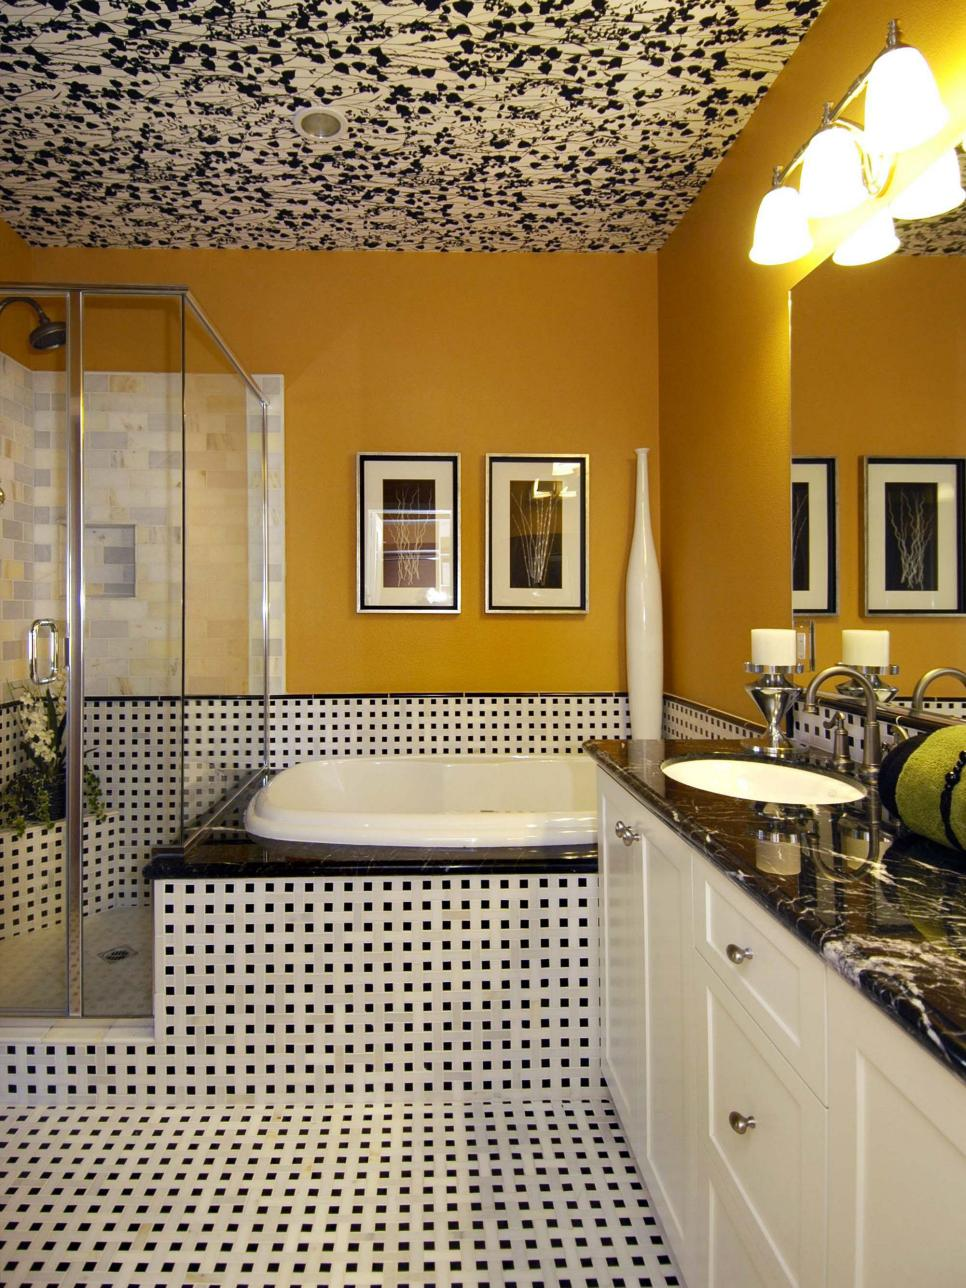 Yellow Bathrooms: 7 Bright Ideas | HGTV